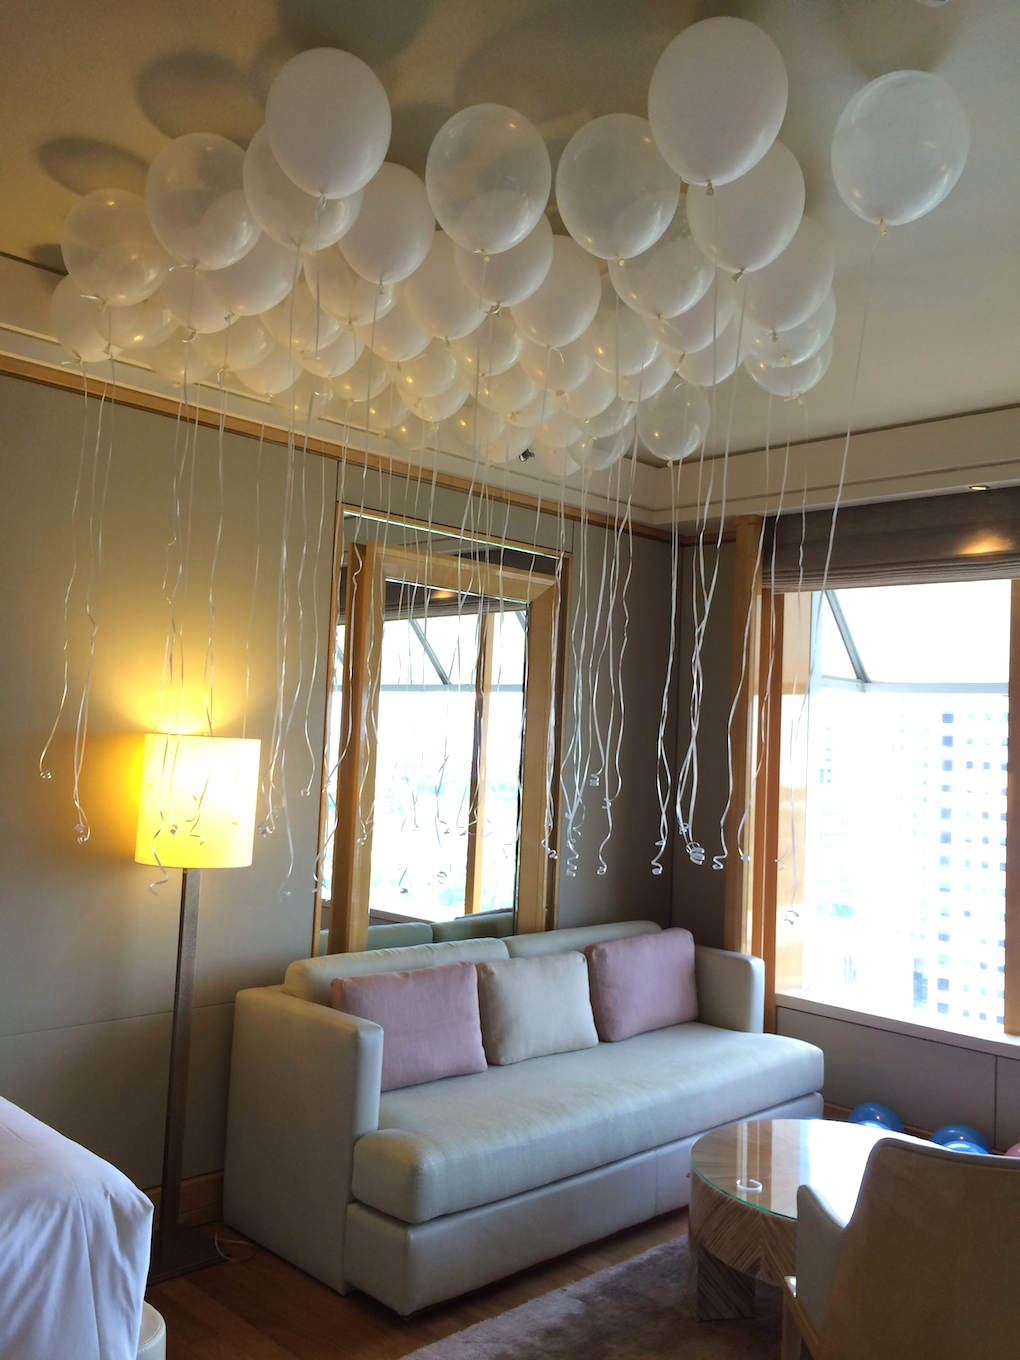 Birthday Party Hotel Room